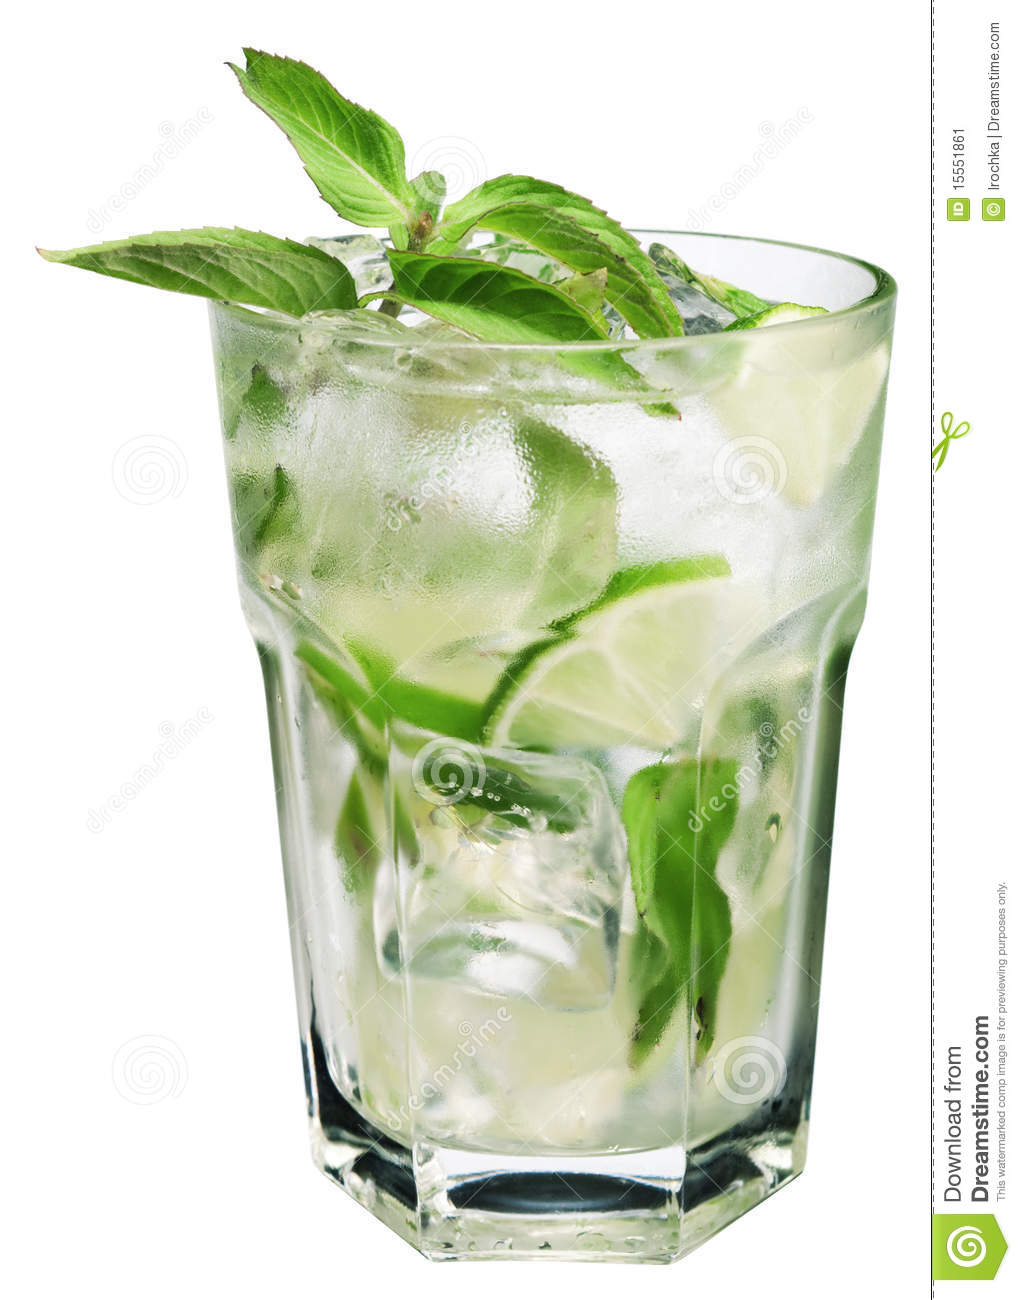 glass filled with a Mojito cocktail garnished with mint leaves ...